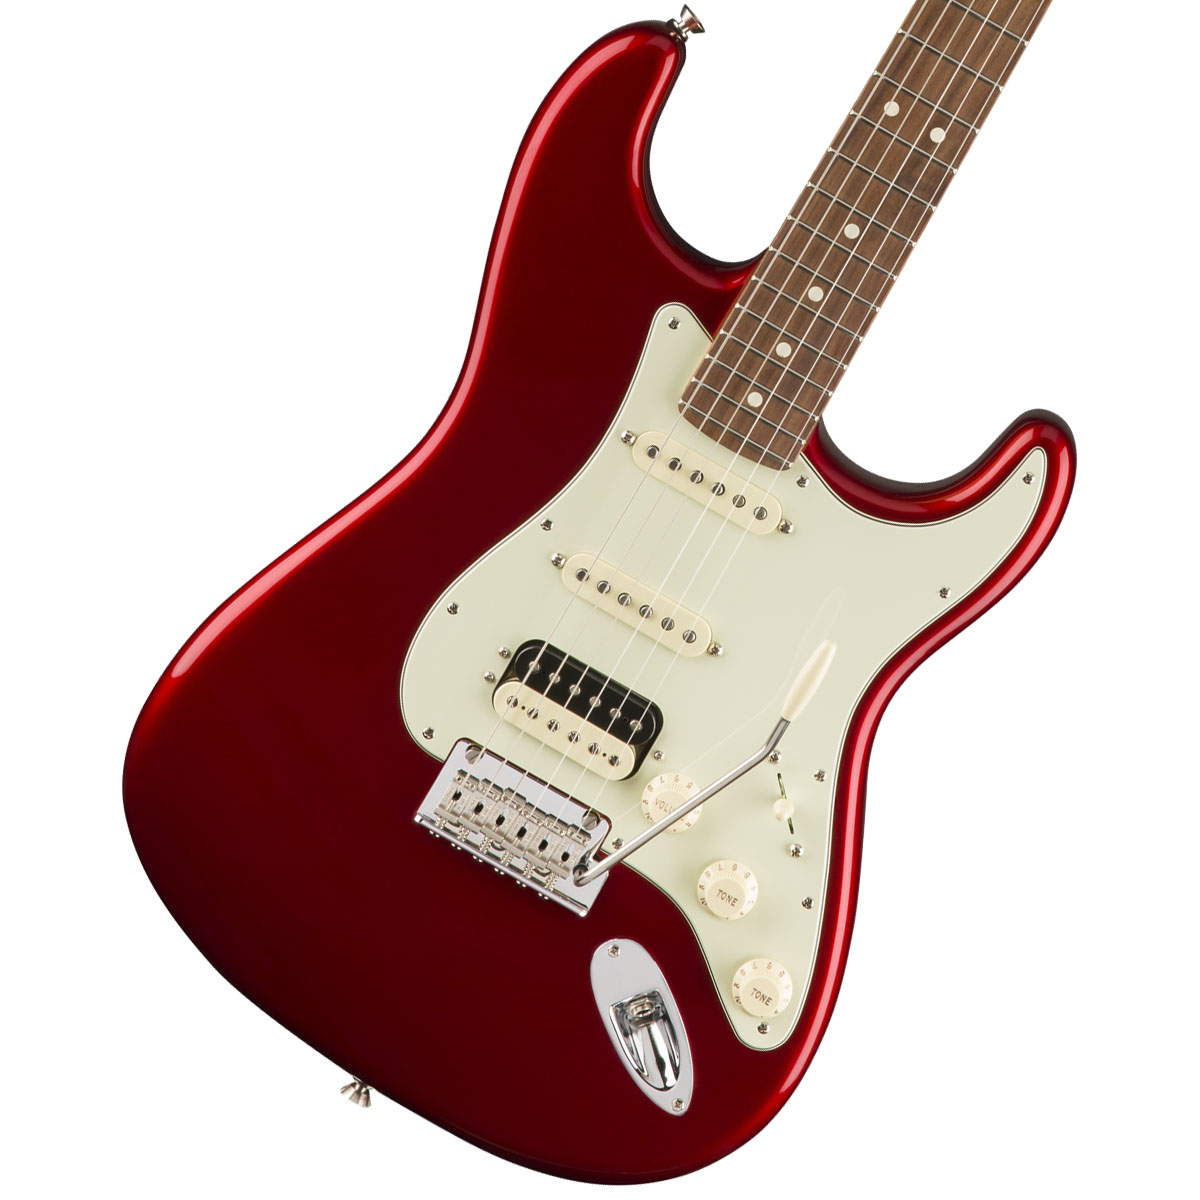 Fender USA / American Professional Stratocaster HSS ShawBucker Rosewood Fingerboard Candy Apple Red 【YRK】《純正チューナーとピック12枚プレゼント!/+811179700》